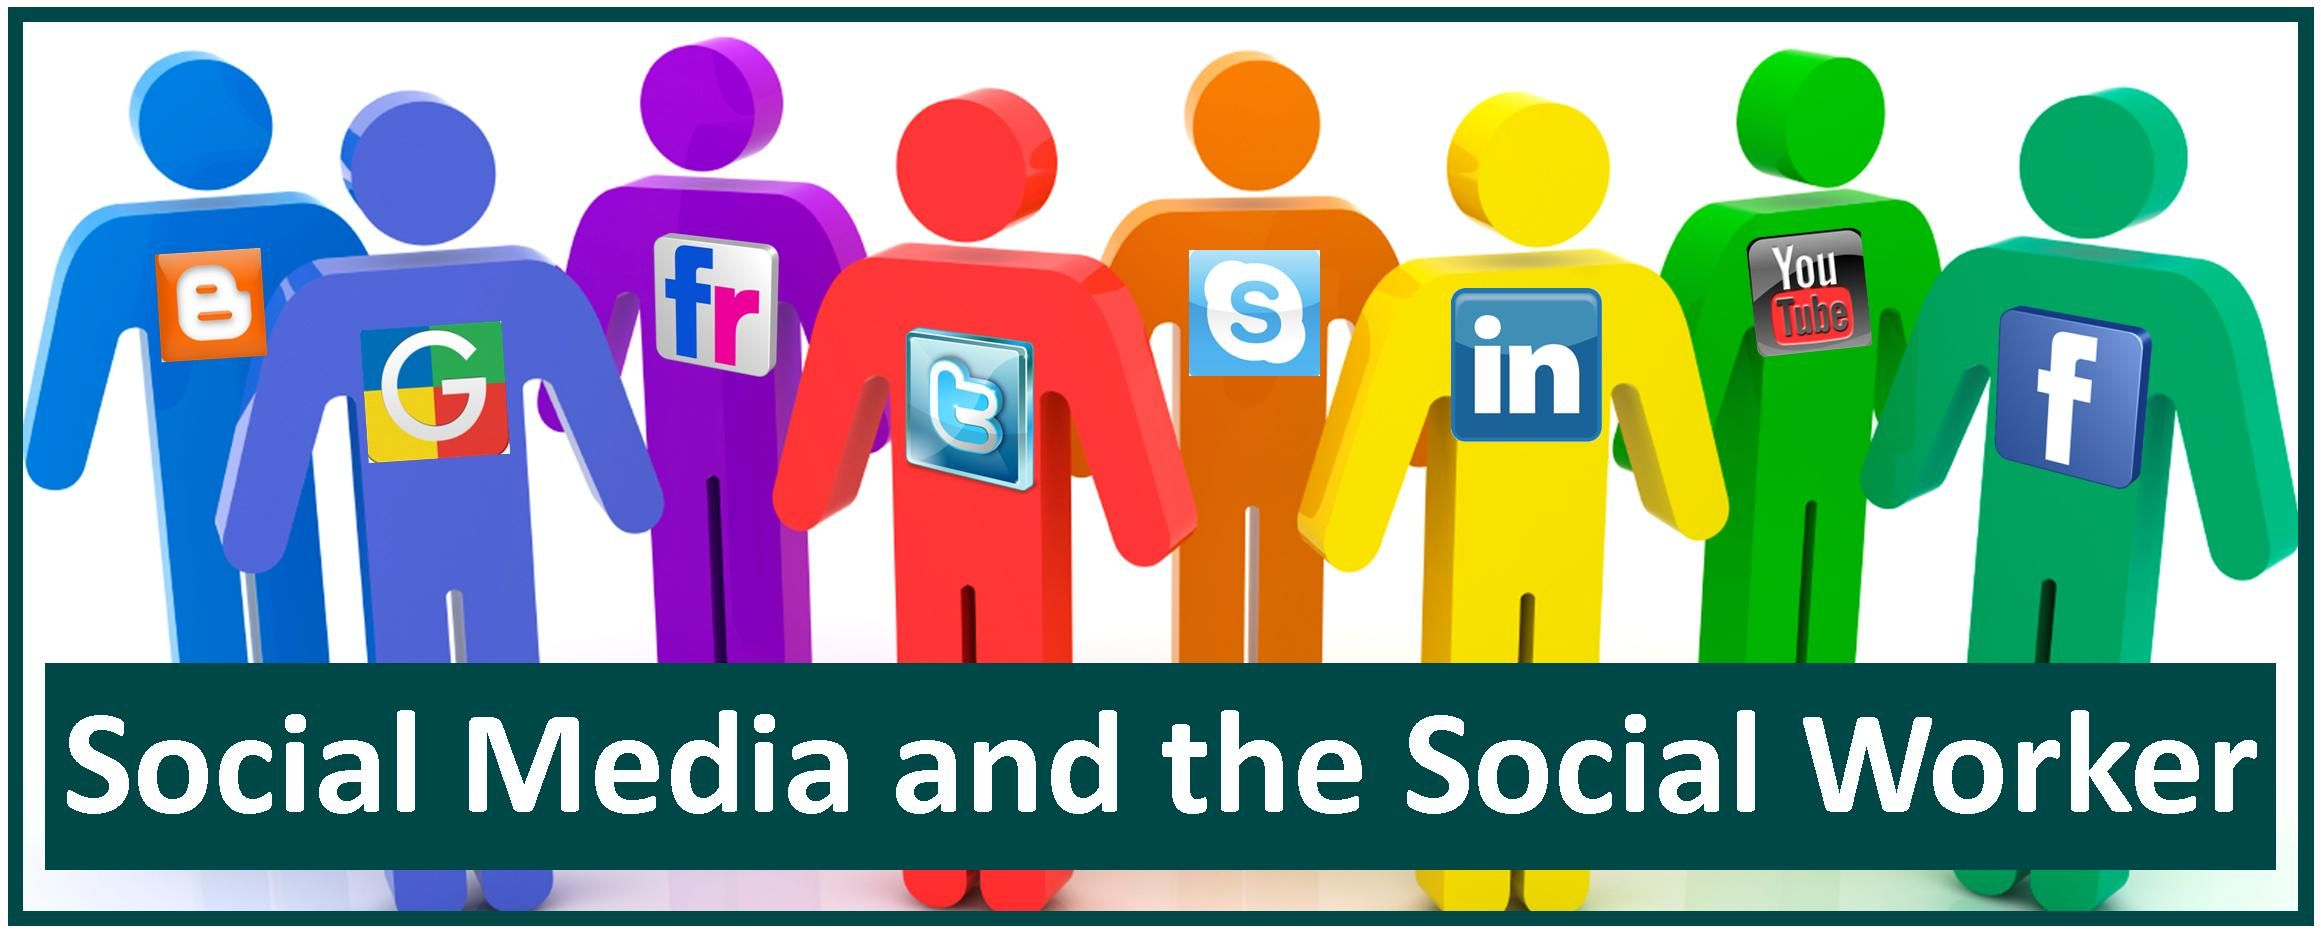 Social Media And The Social Worker-3809